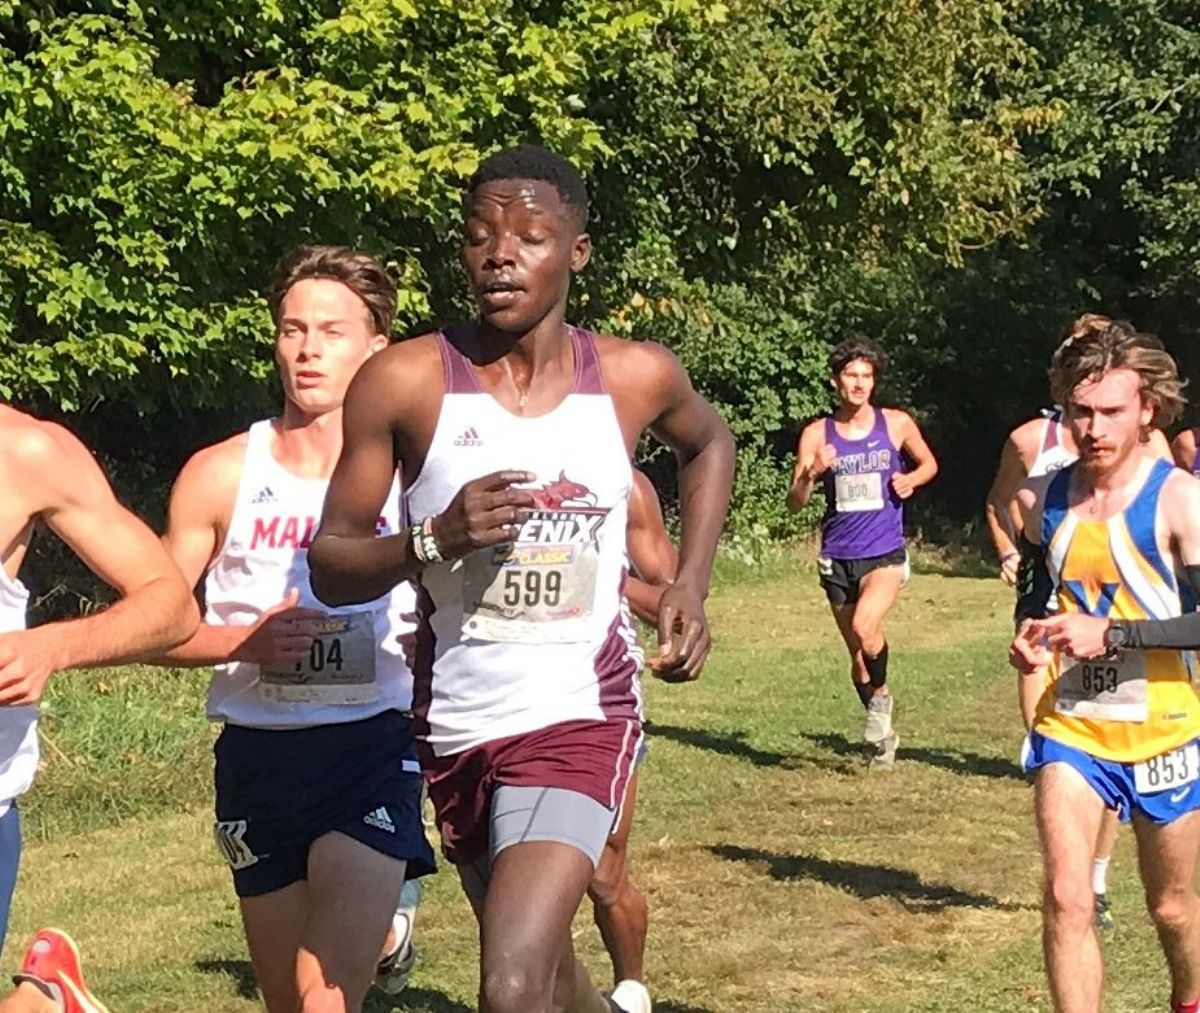 Kiplagat paces Men's XC at 'Live in Lou' Cross Country Classic